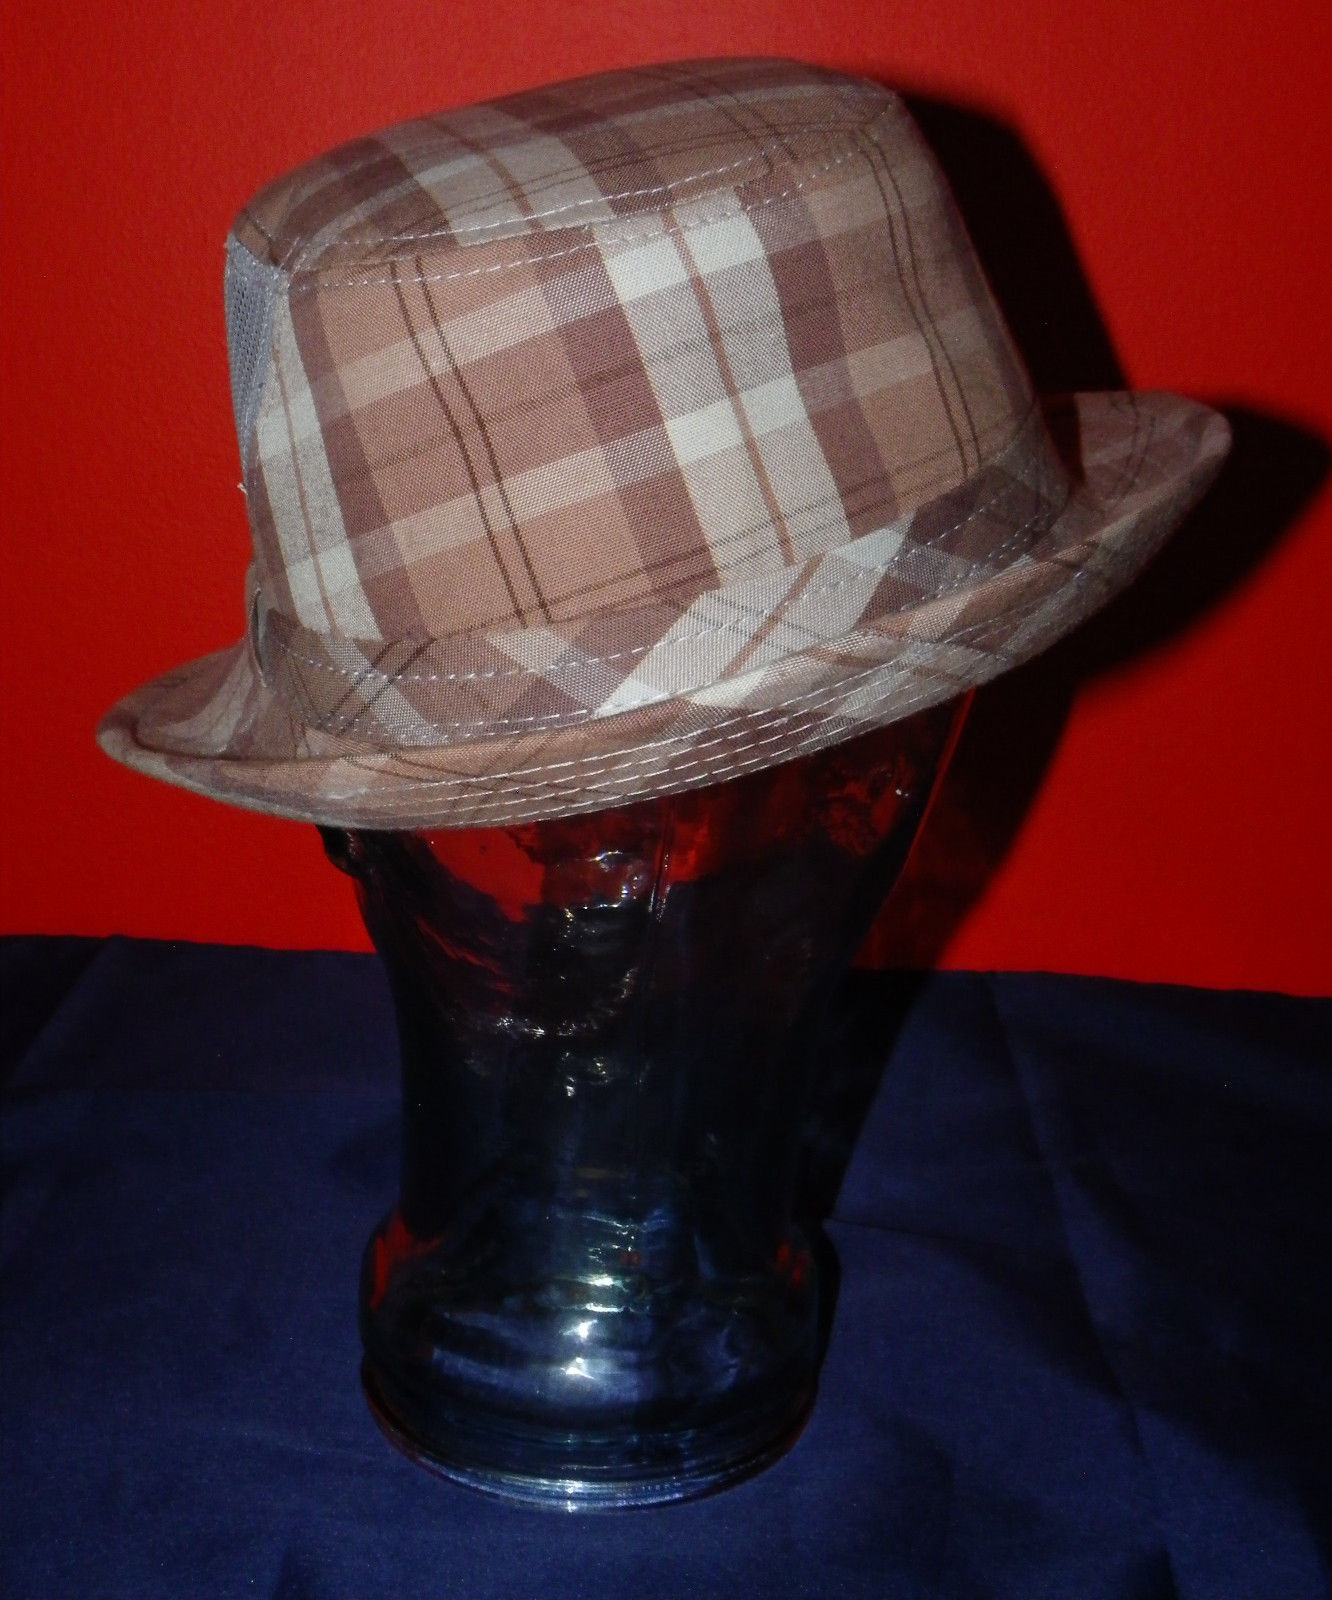 Dorfman Pacific Authentic Handmade Headwear Size M Warm Plaid Fedora Trilby image 5